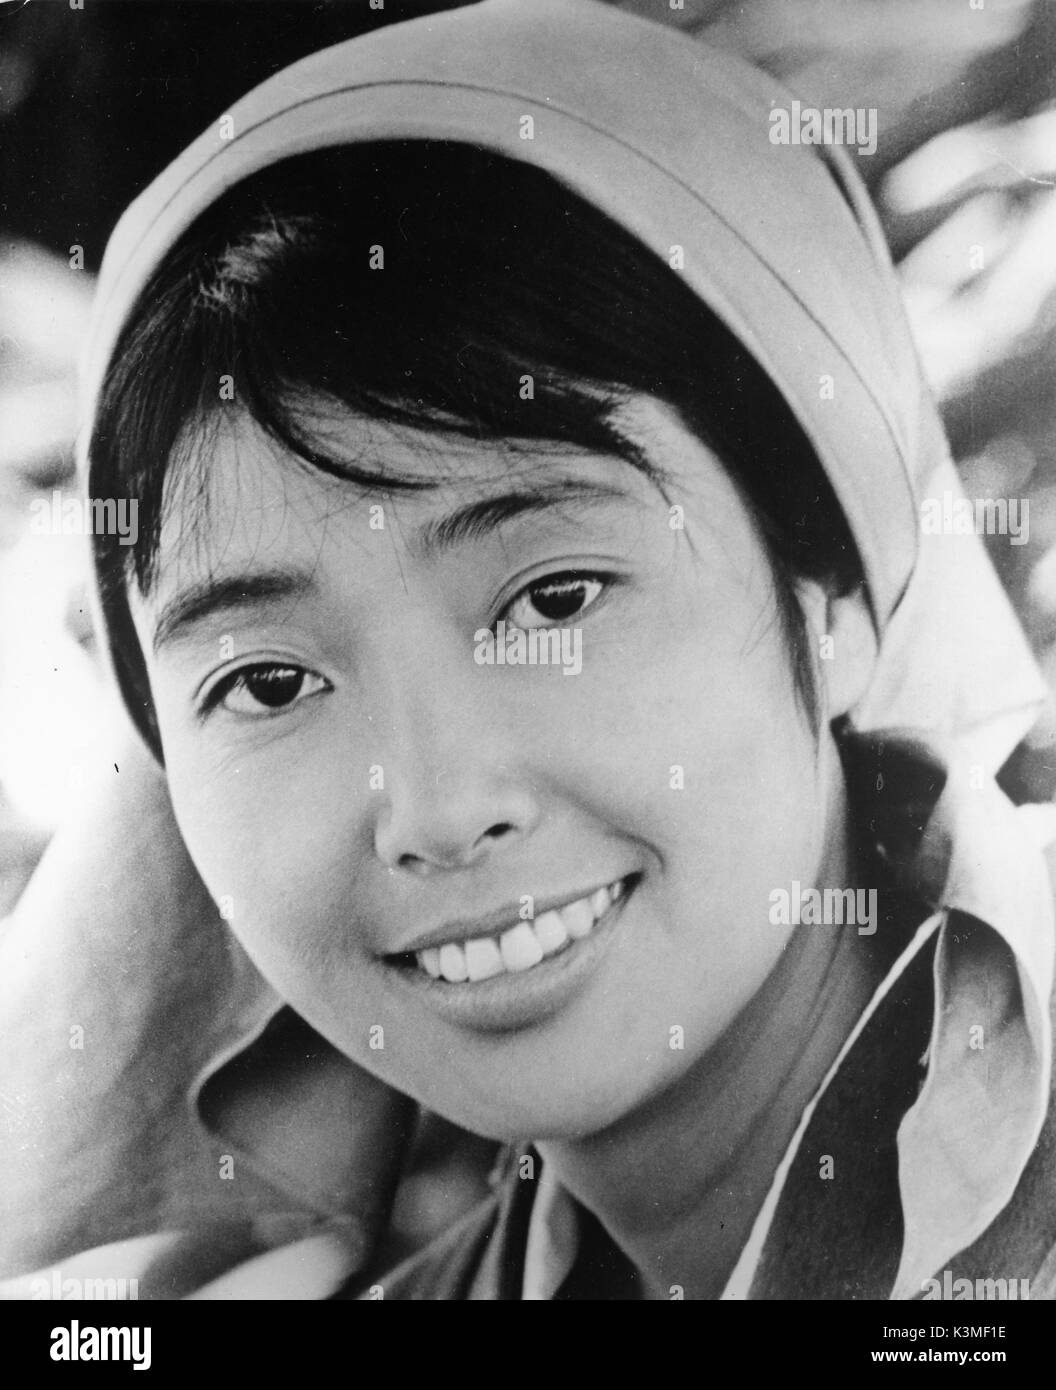 Japanese American Black and White Stock Photos & Images - Alamy